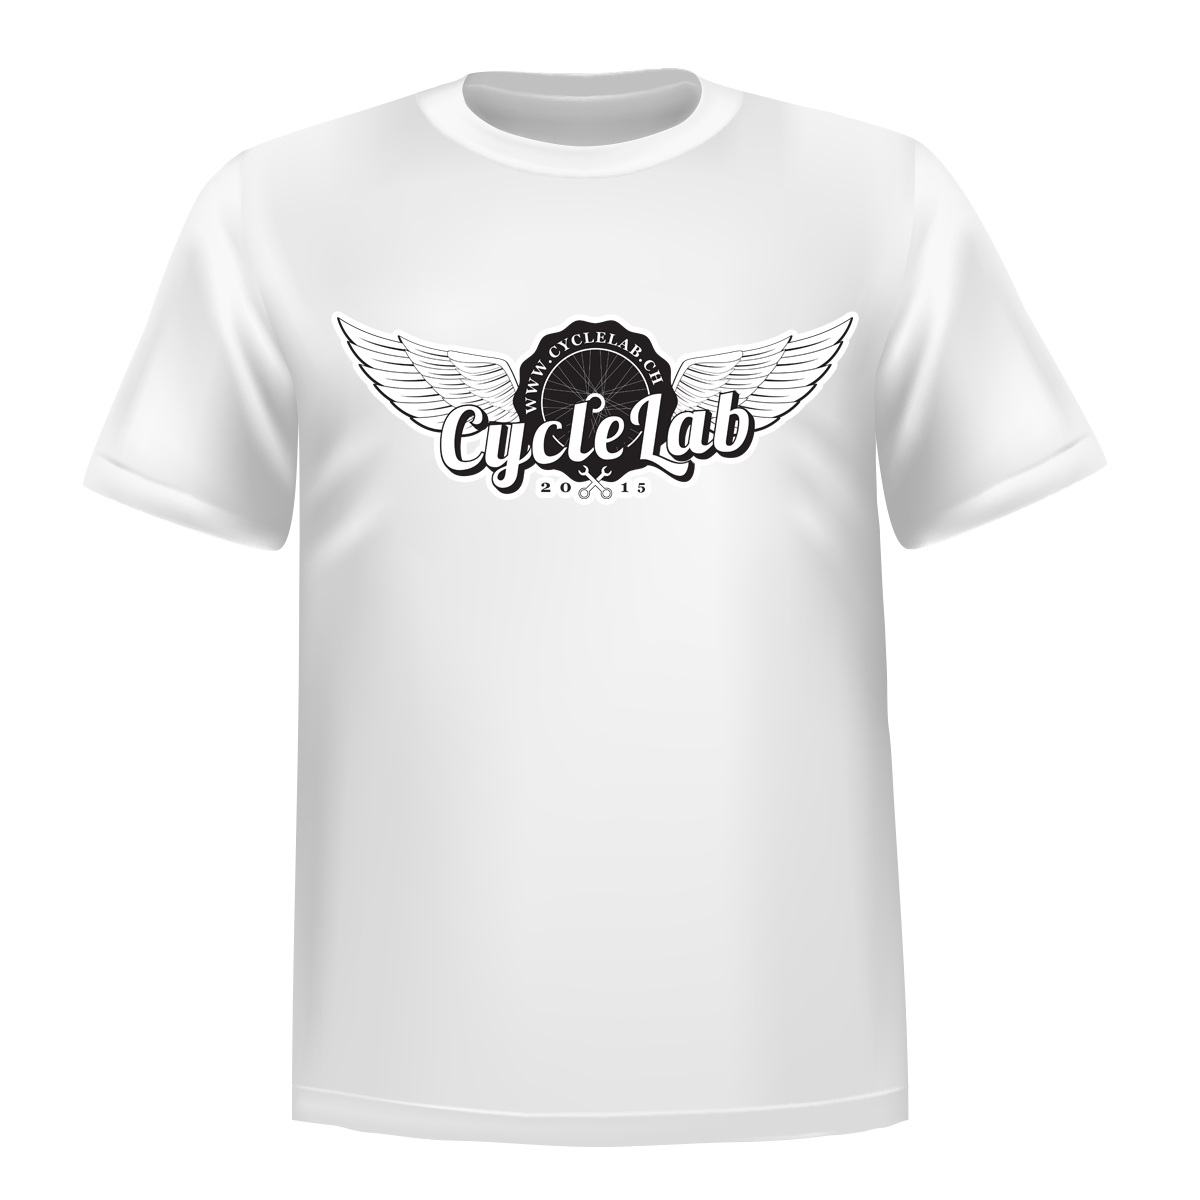 171212_t_shirt_cyclelab_wings_blanc__1___1515321970_13